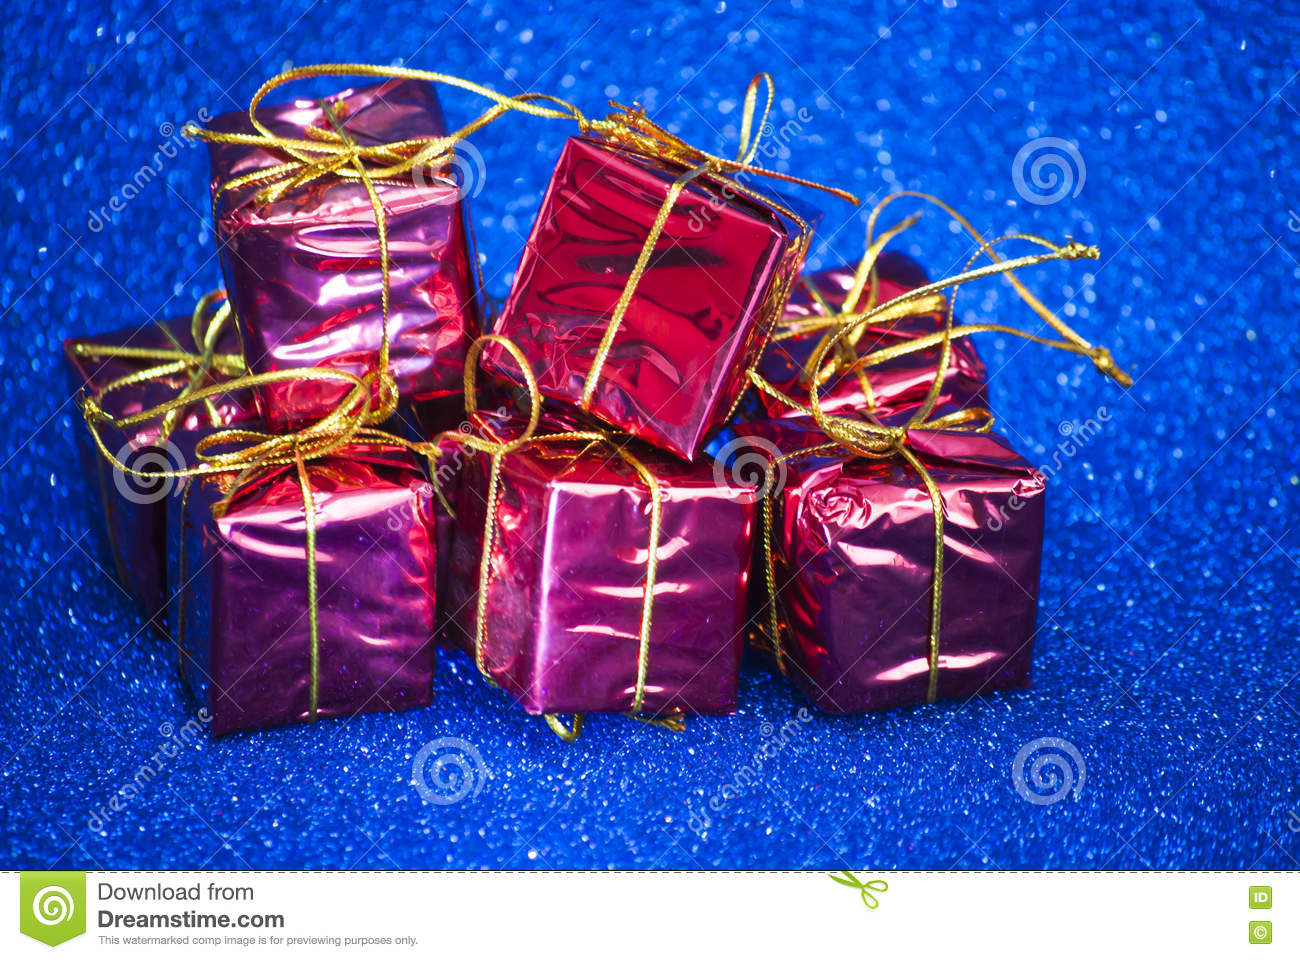 Gift packages for a party such as Christmas or birthday on bright blue background  sc 1 st  Dreamstime.com & Gift Packages On Bright Blue Background Stock Image - Image of ...